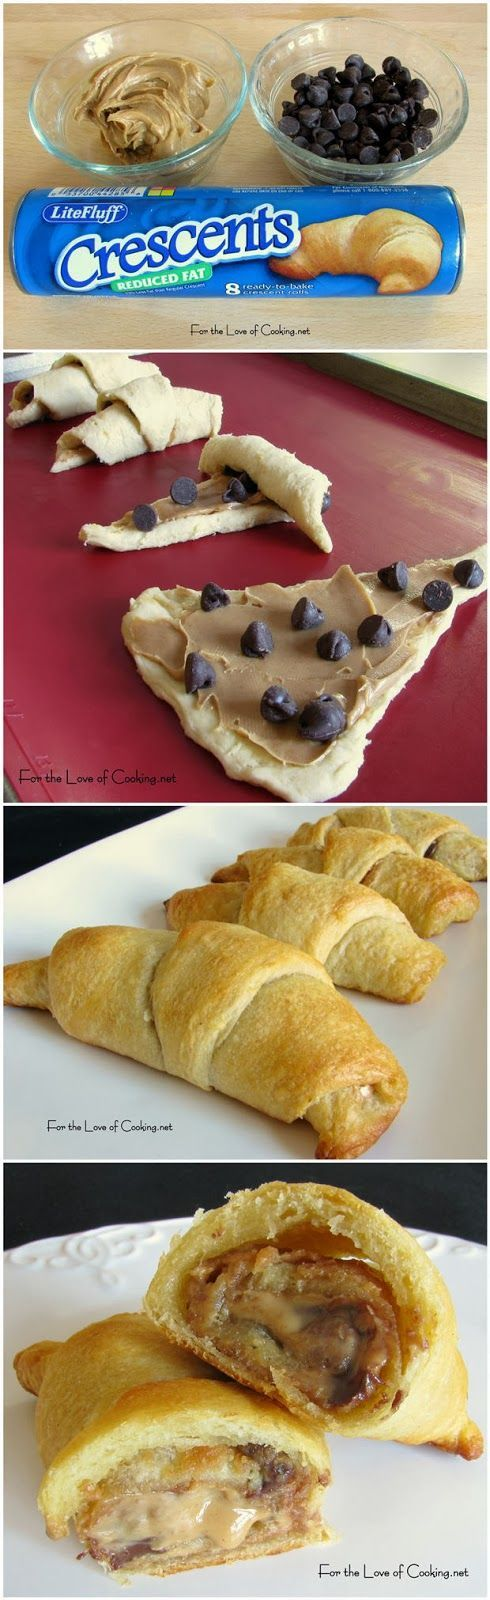 Chocolate and Peanut Butter Crescent Rolls.